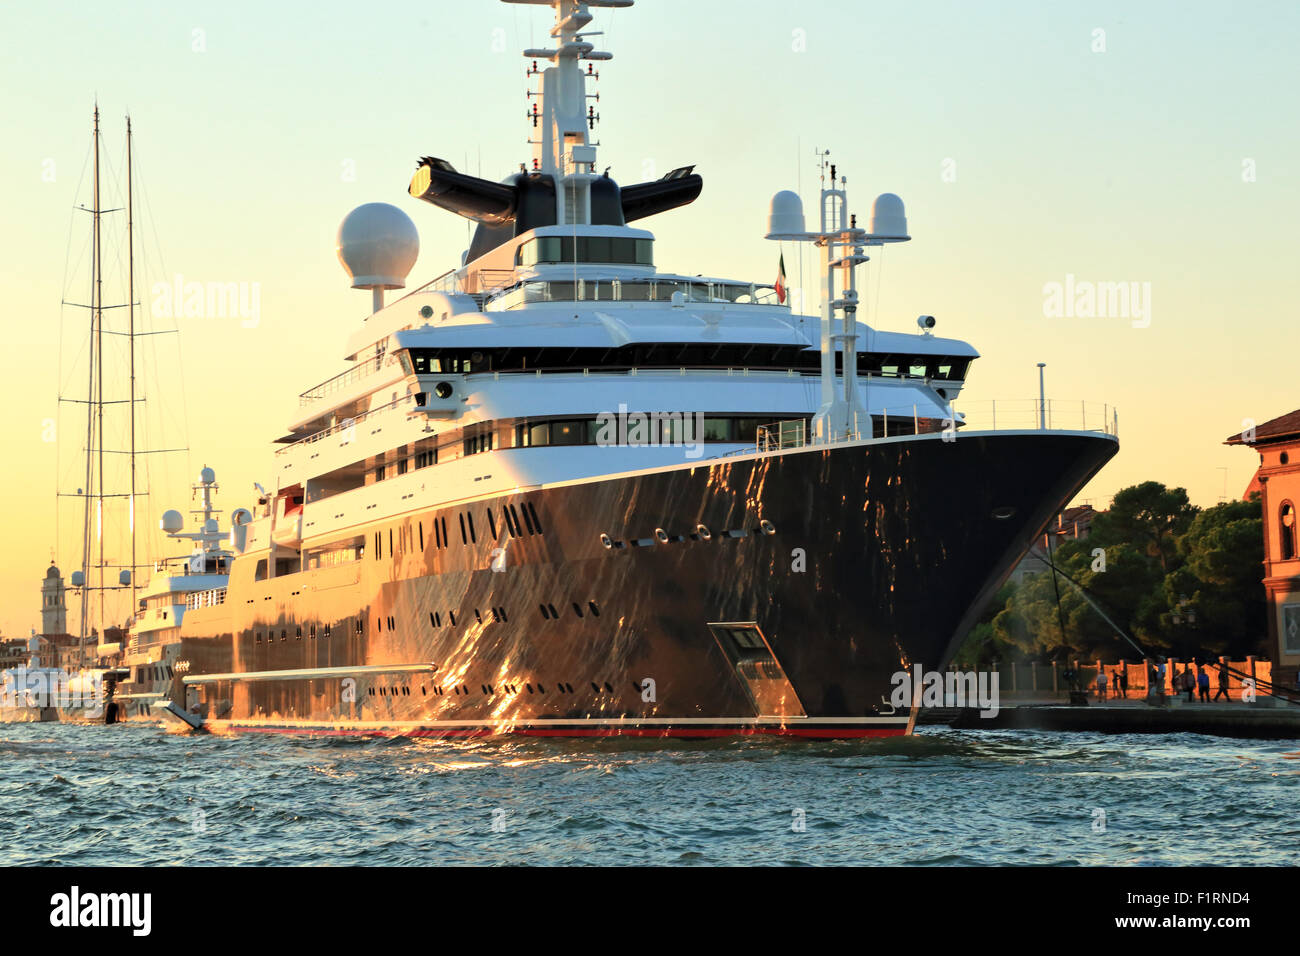 Paul Allens Yacht Octopus IMO 1007213